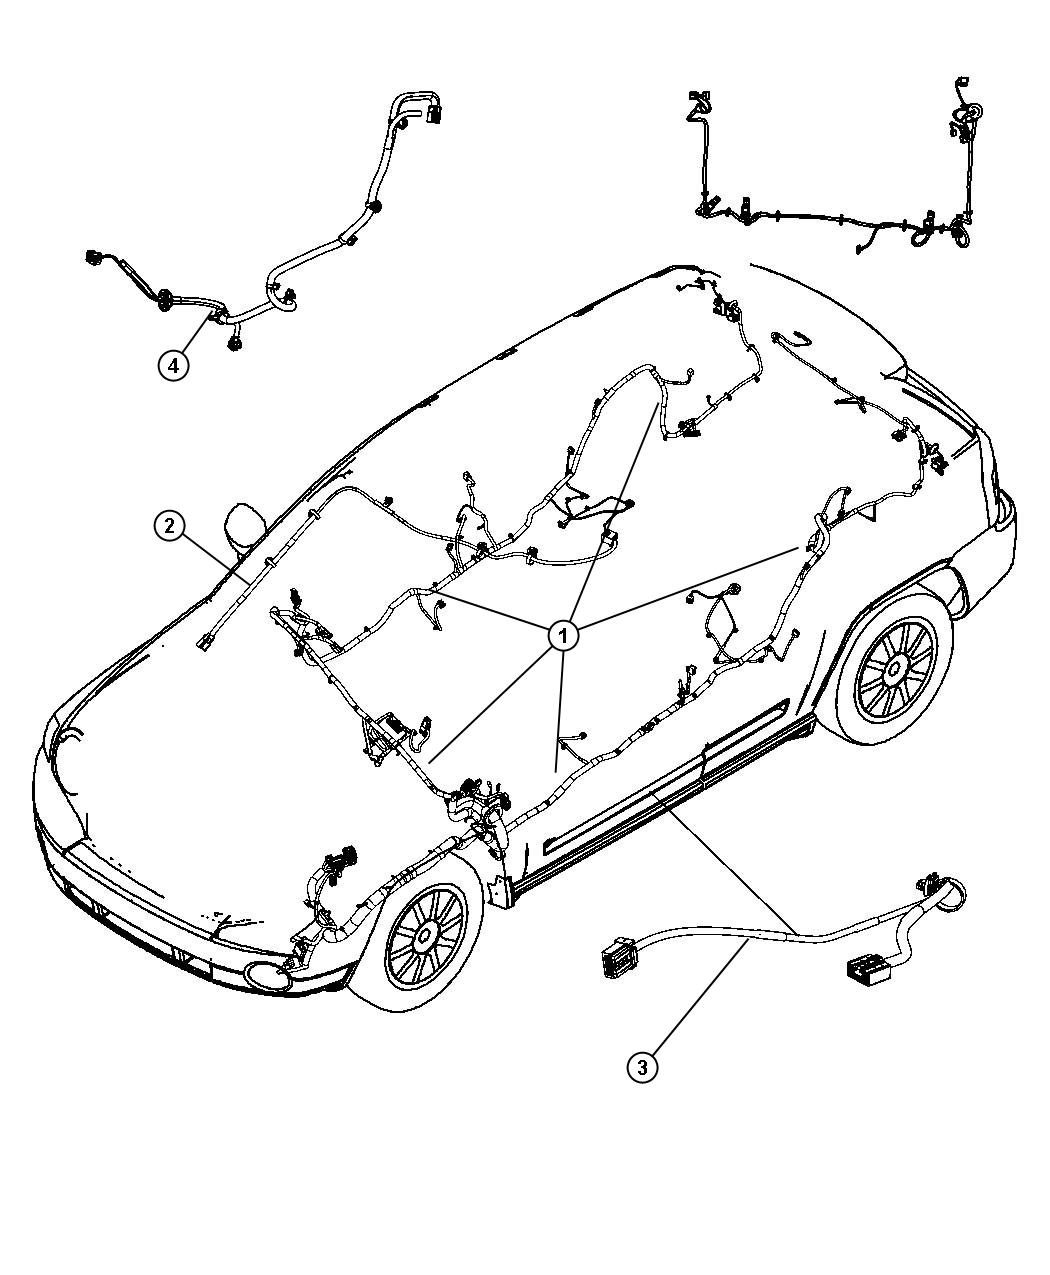 top suggestions wiring diagram for tire pressure monitor :